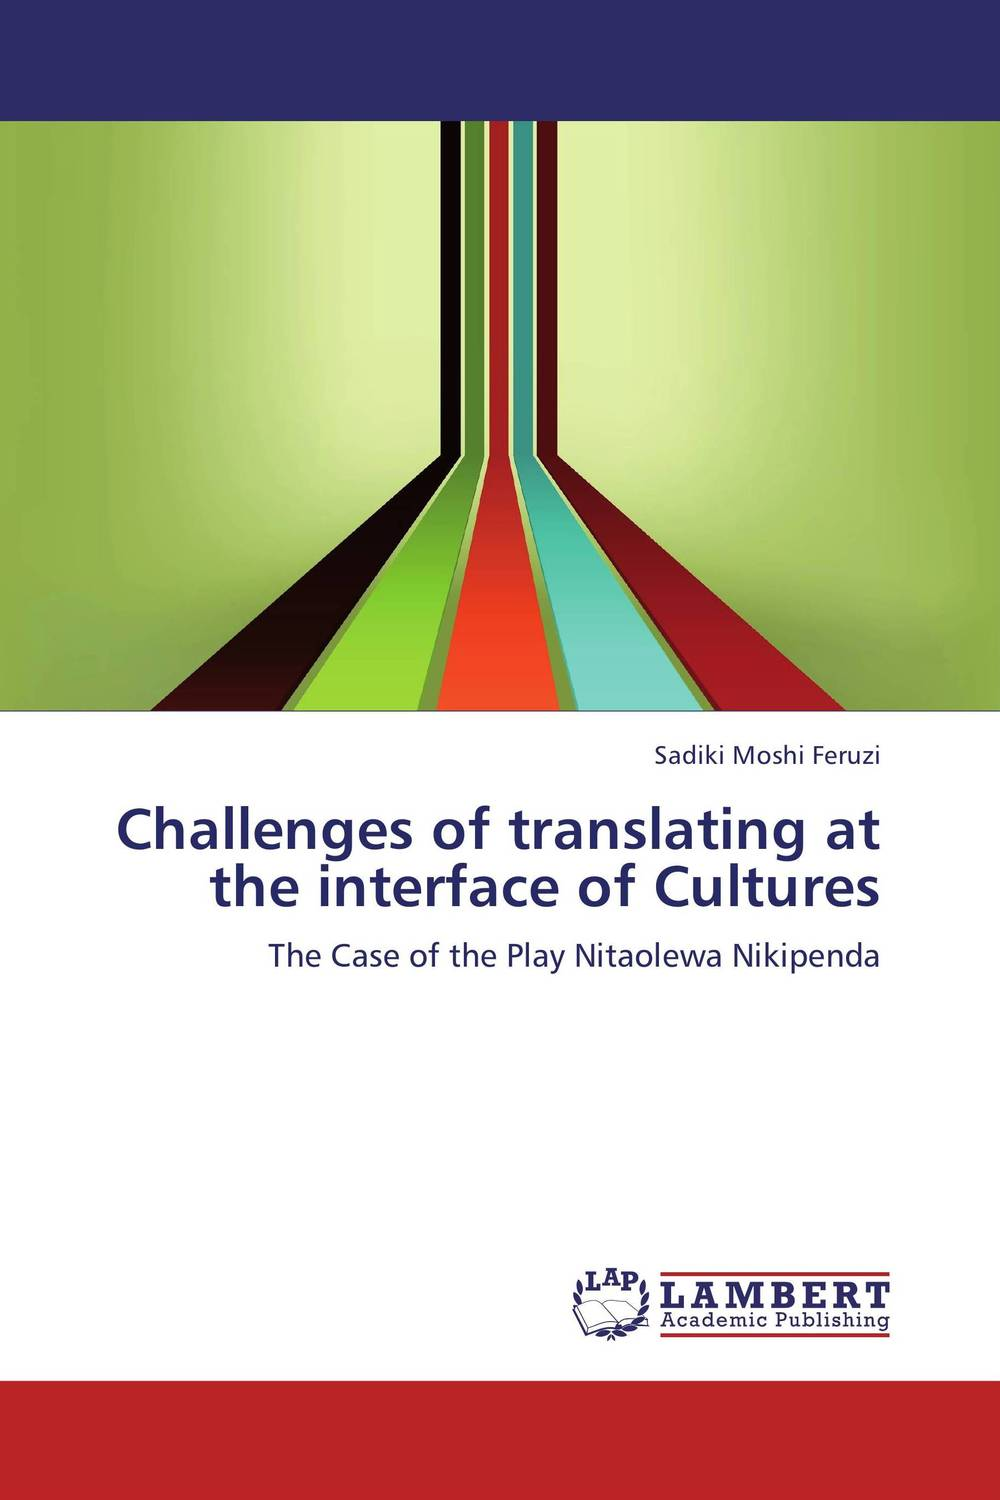 Challenges of translating at the interface of Cultures